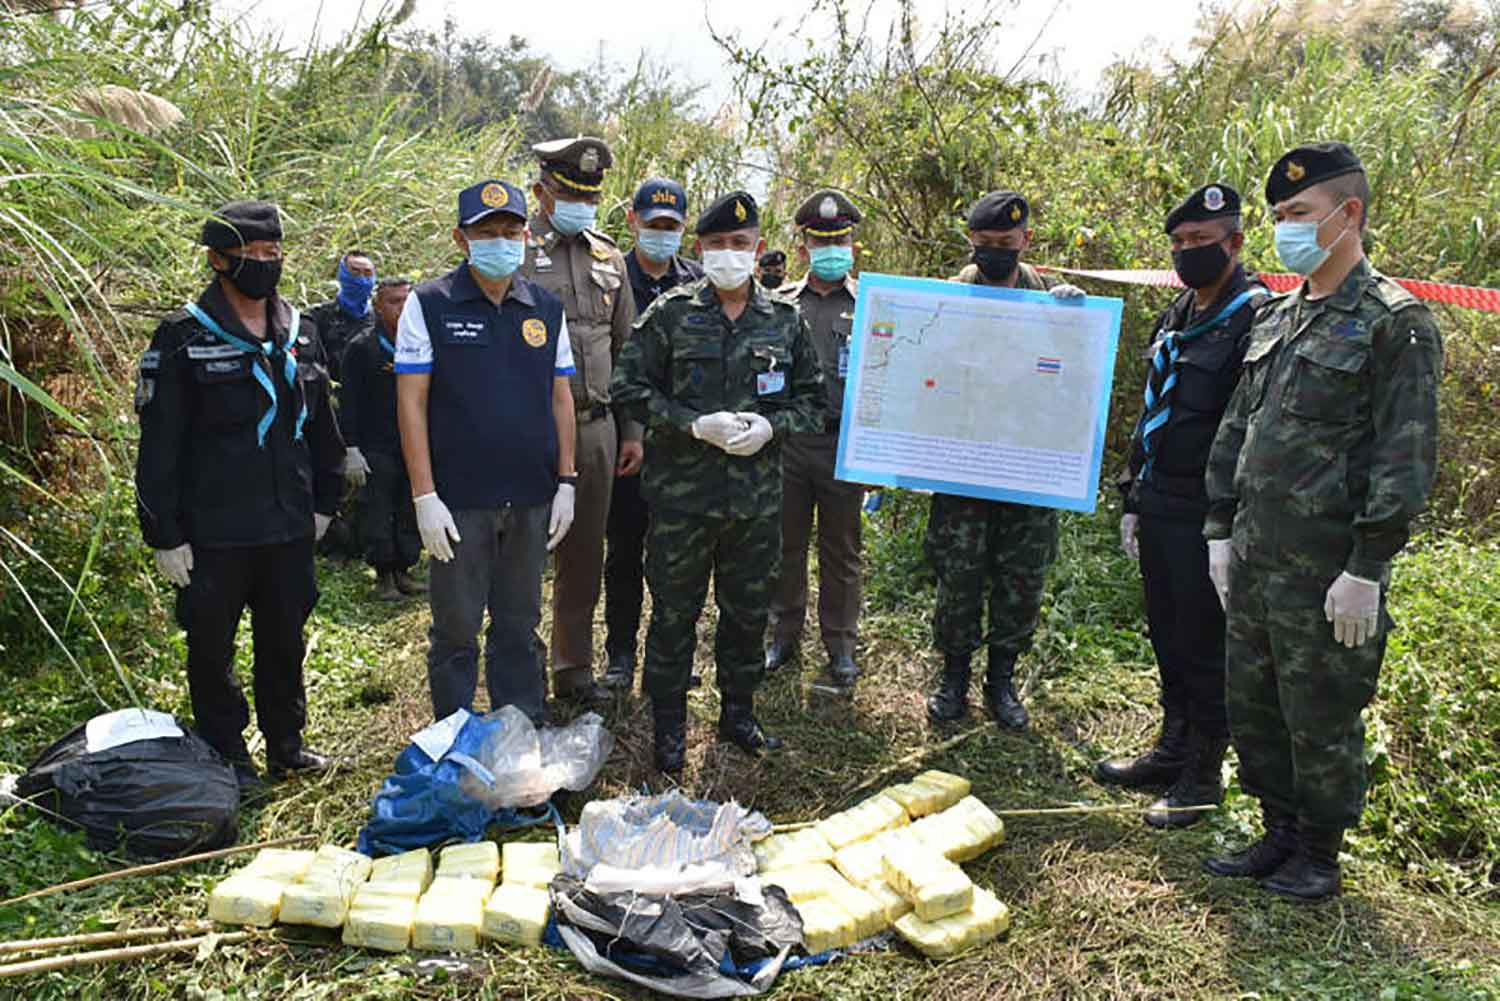 Soldiers seize 1.6 million speed pills after a clash with armed narcotic smugglers near the border in Mae Chan district, Chiang Rai, in February. (Army photo)